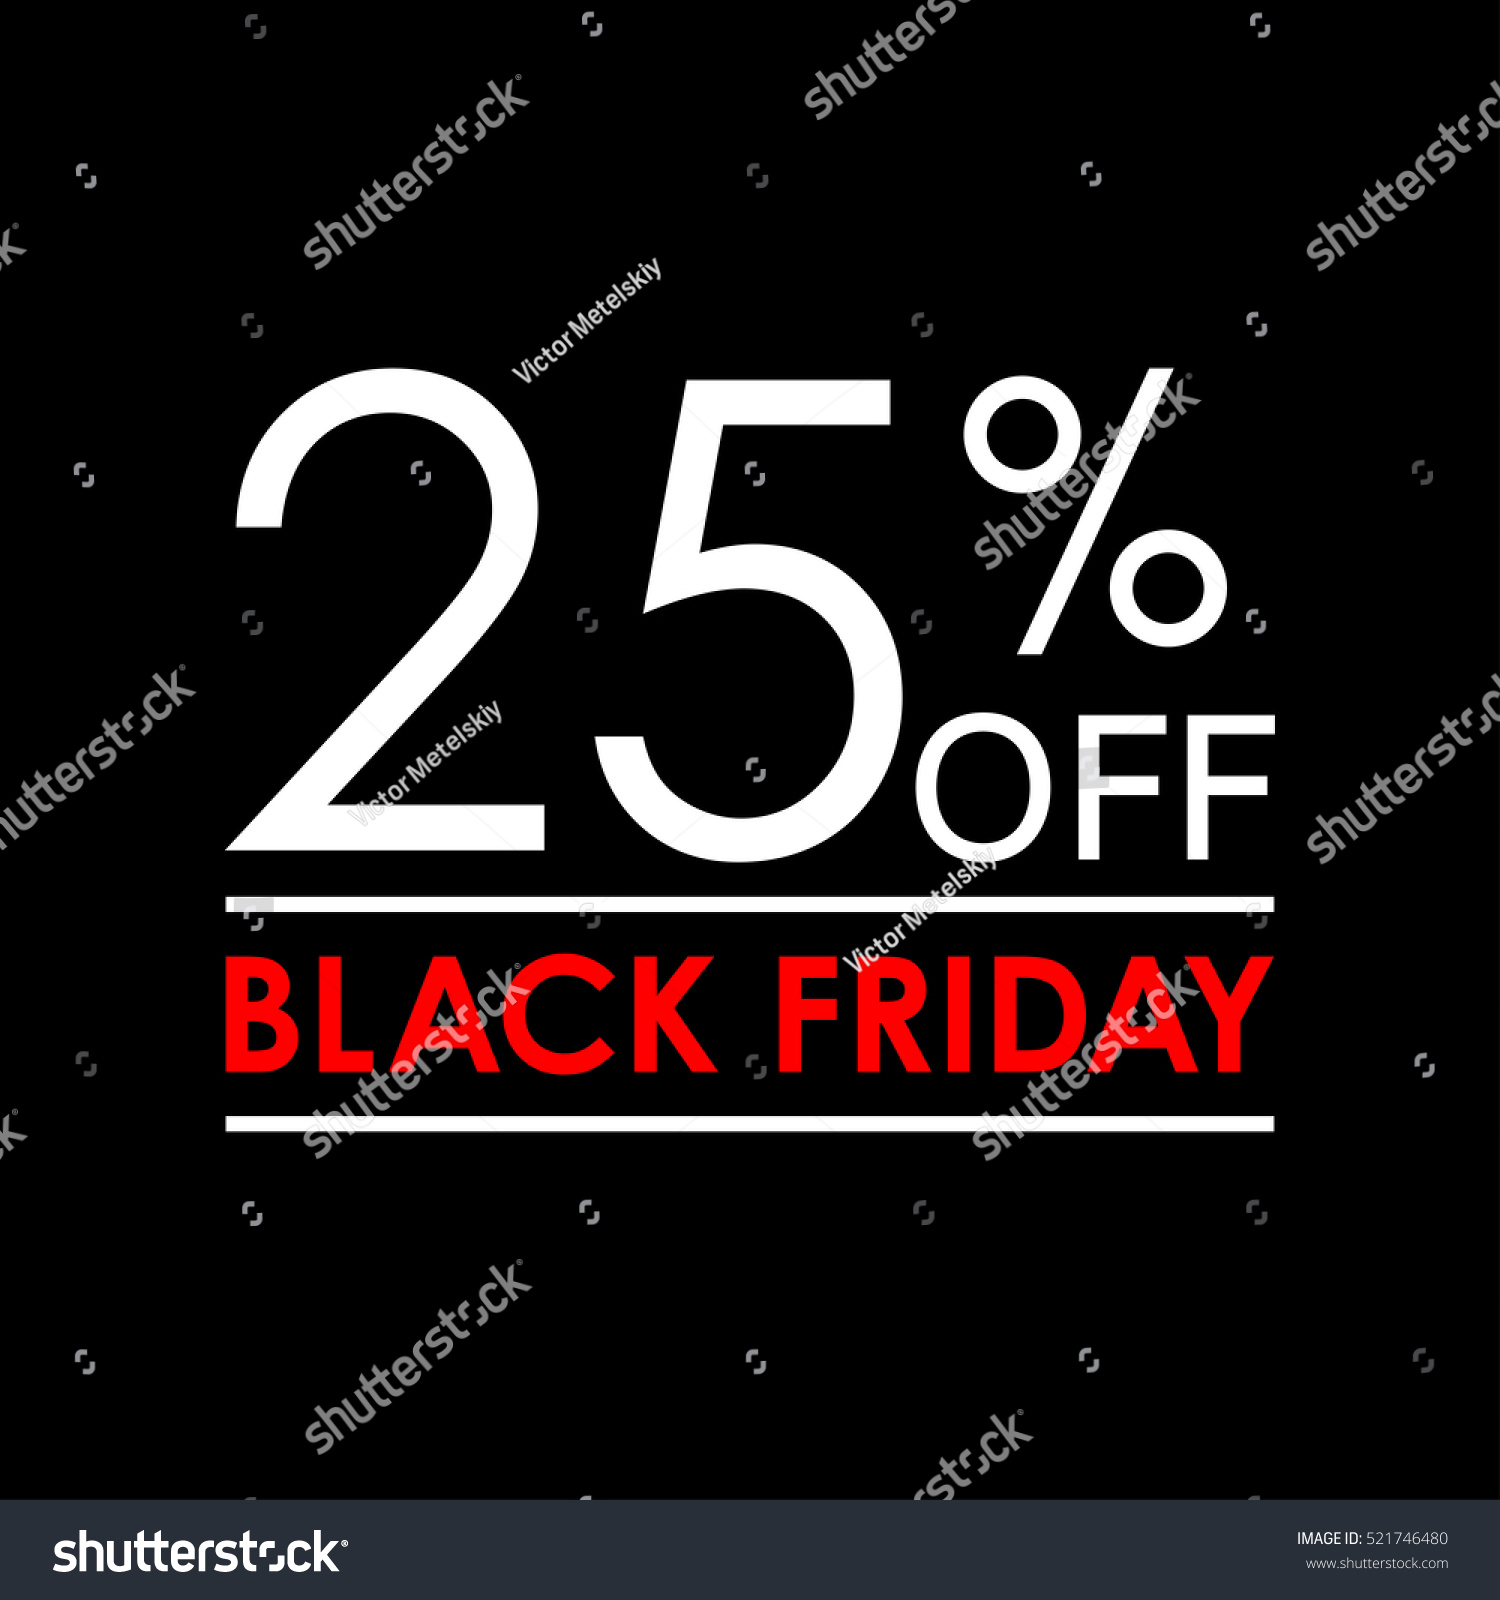 Black Friday Sale 25 Off Black Friday Sale Discount Stok Vektör Telifsiz 521746480